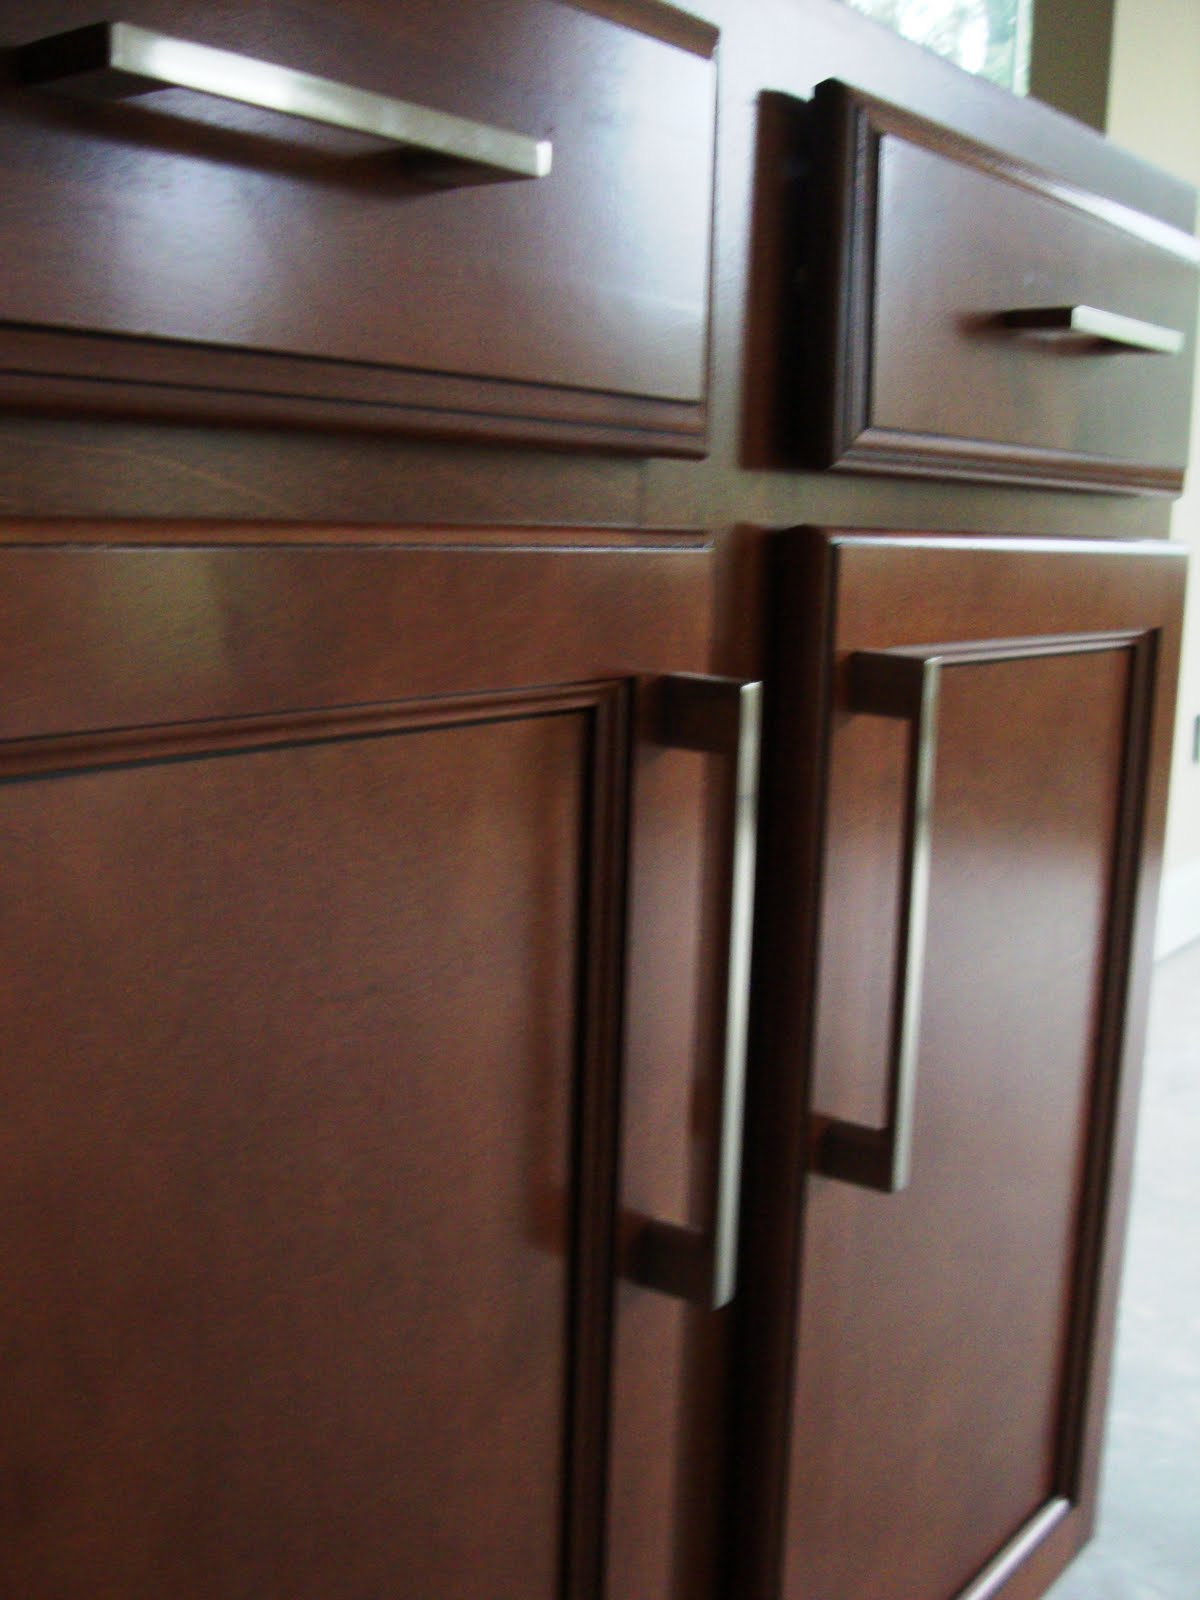 Handles And Knobs For Kitchen Cabinets Michael Blanchard Handyman Services Small Projects That